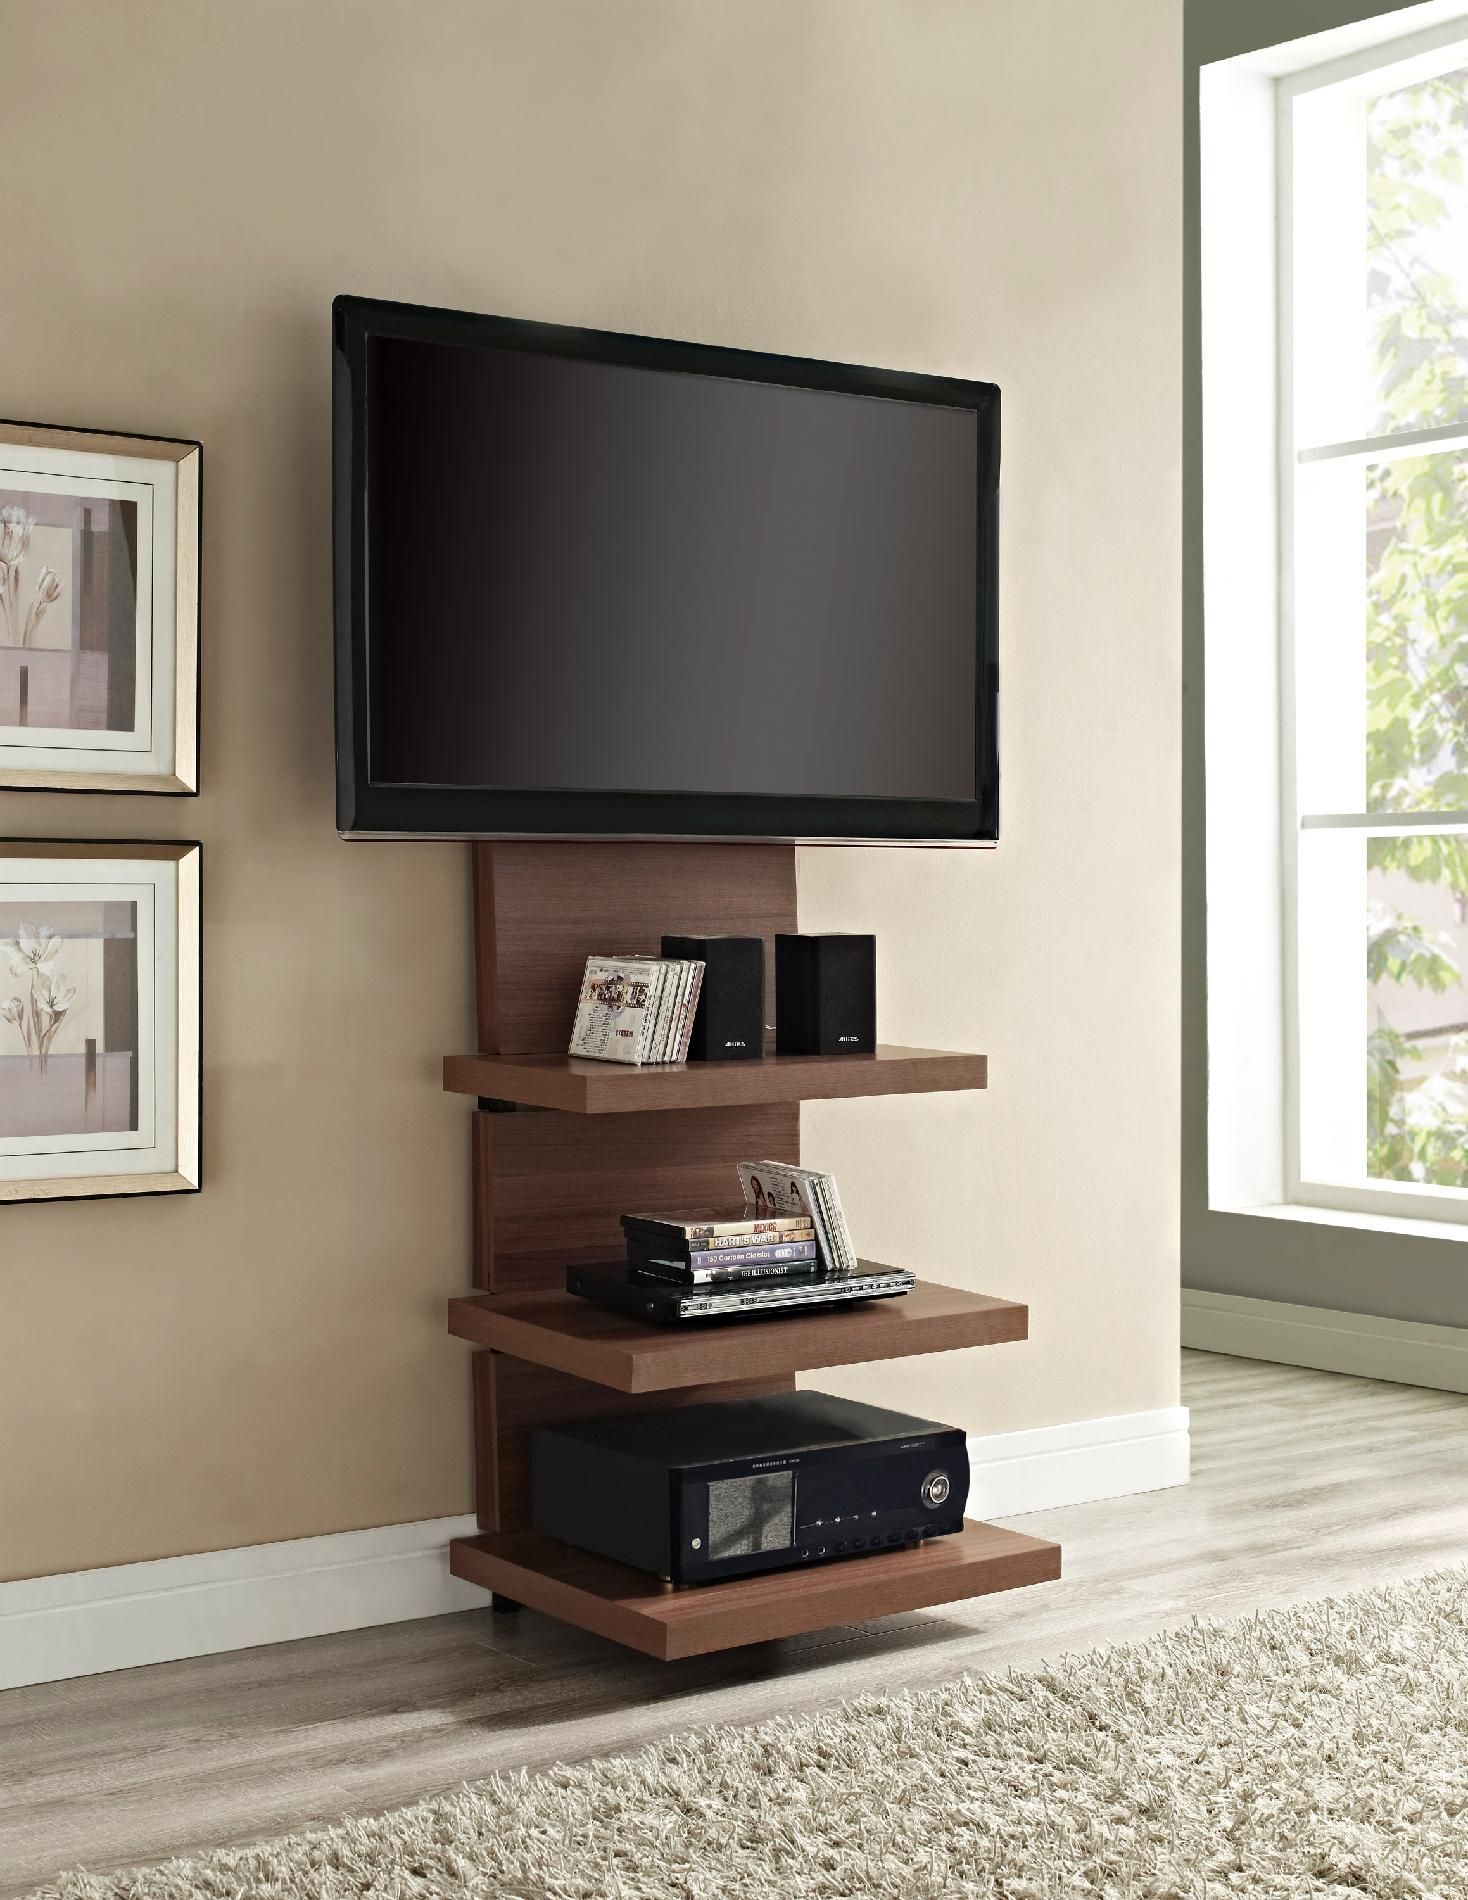 How High To Mount Tv On Wall In Bedroom 18 Chic And Modern Tv Wall Mount Ideas For Living Room